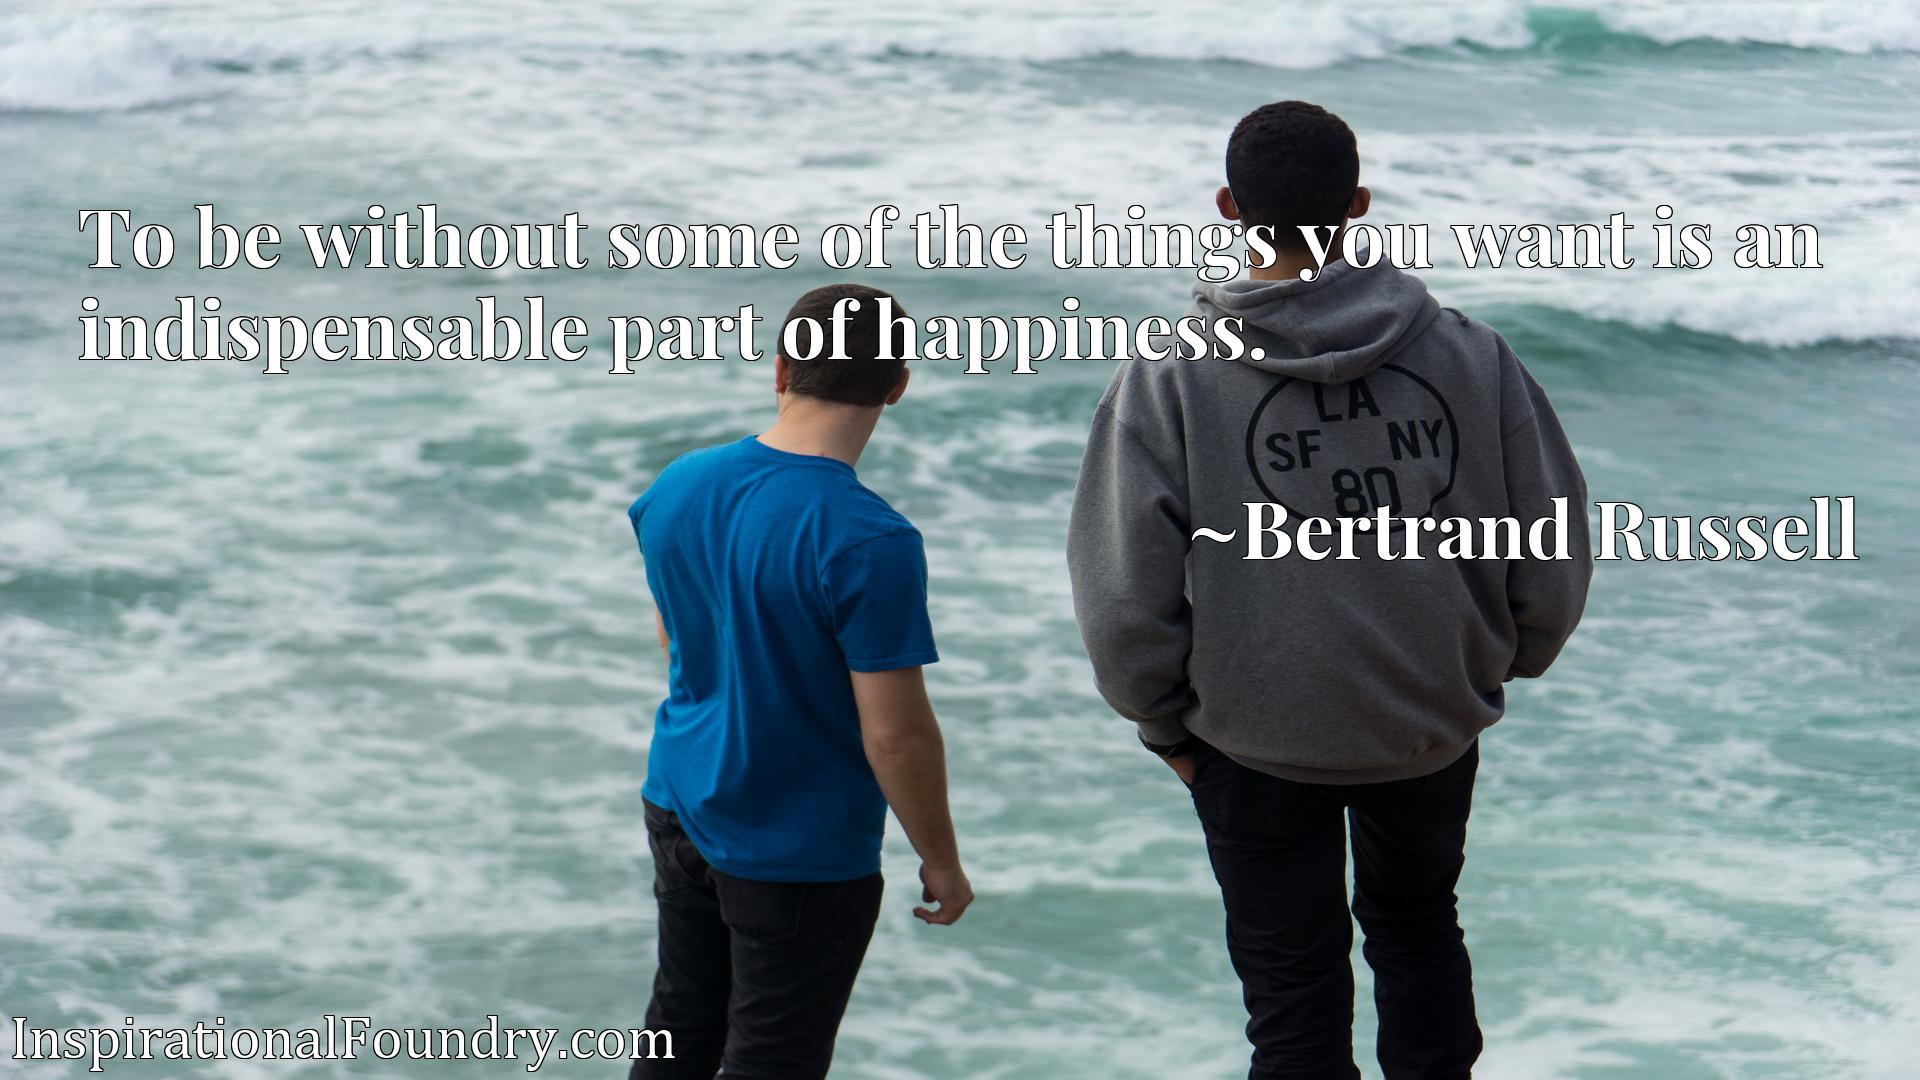 Quote Picture :To be without some of the things you want is an indispensable part of happiness.